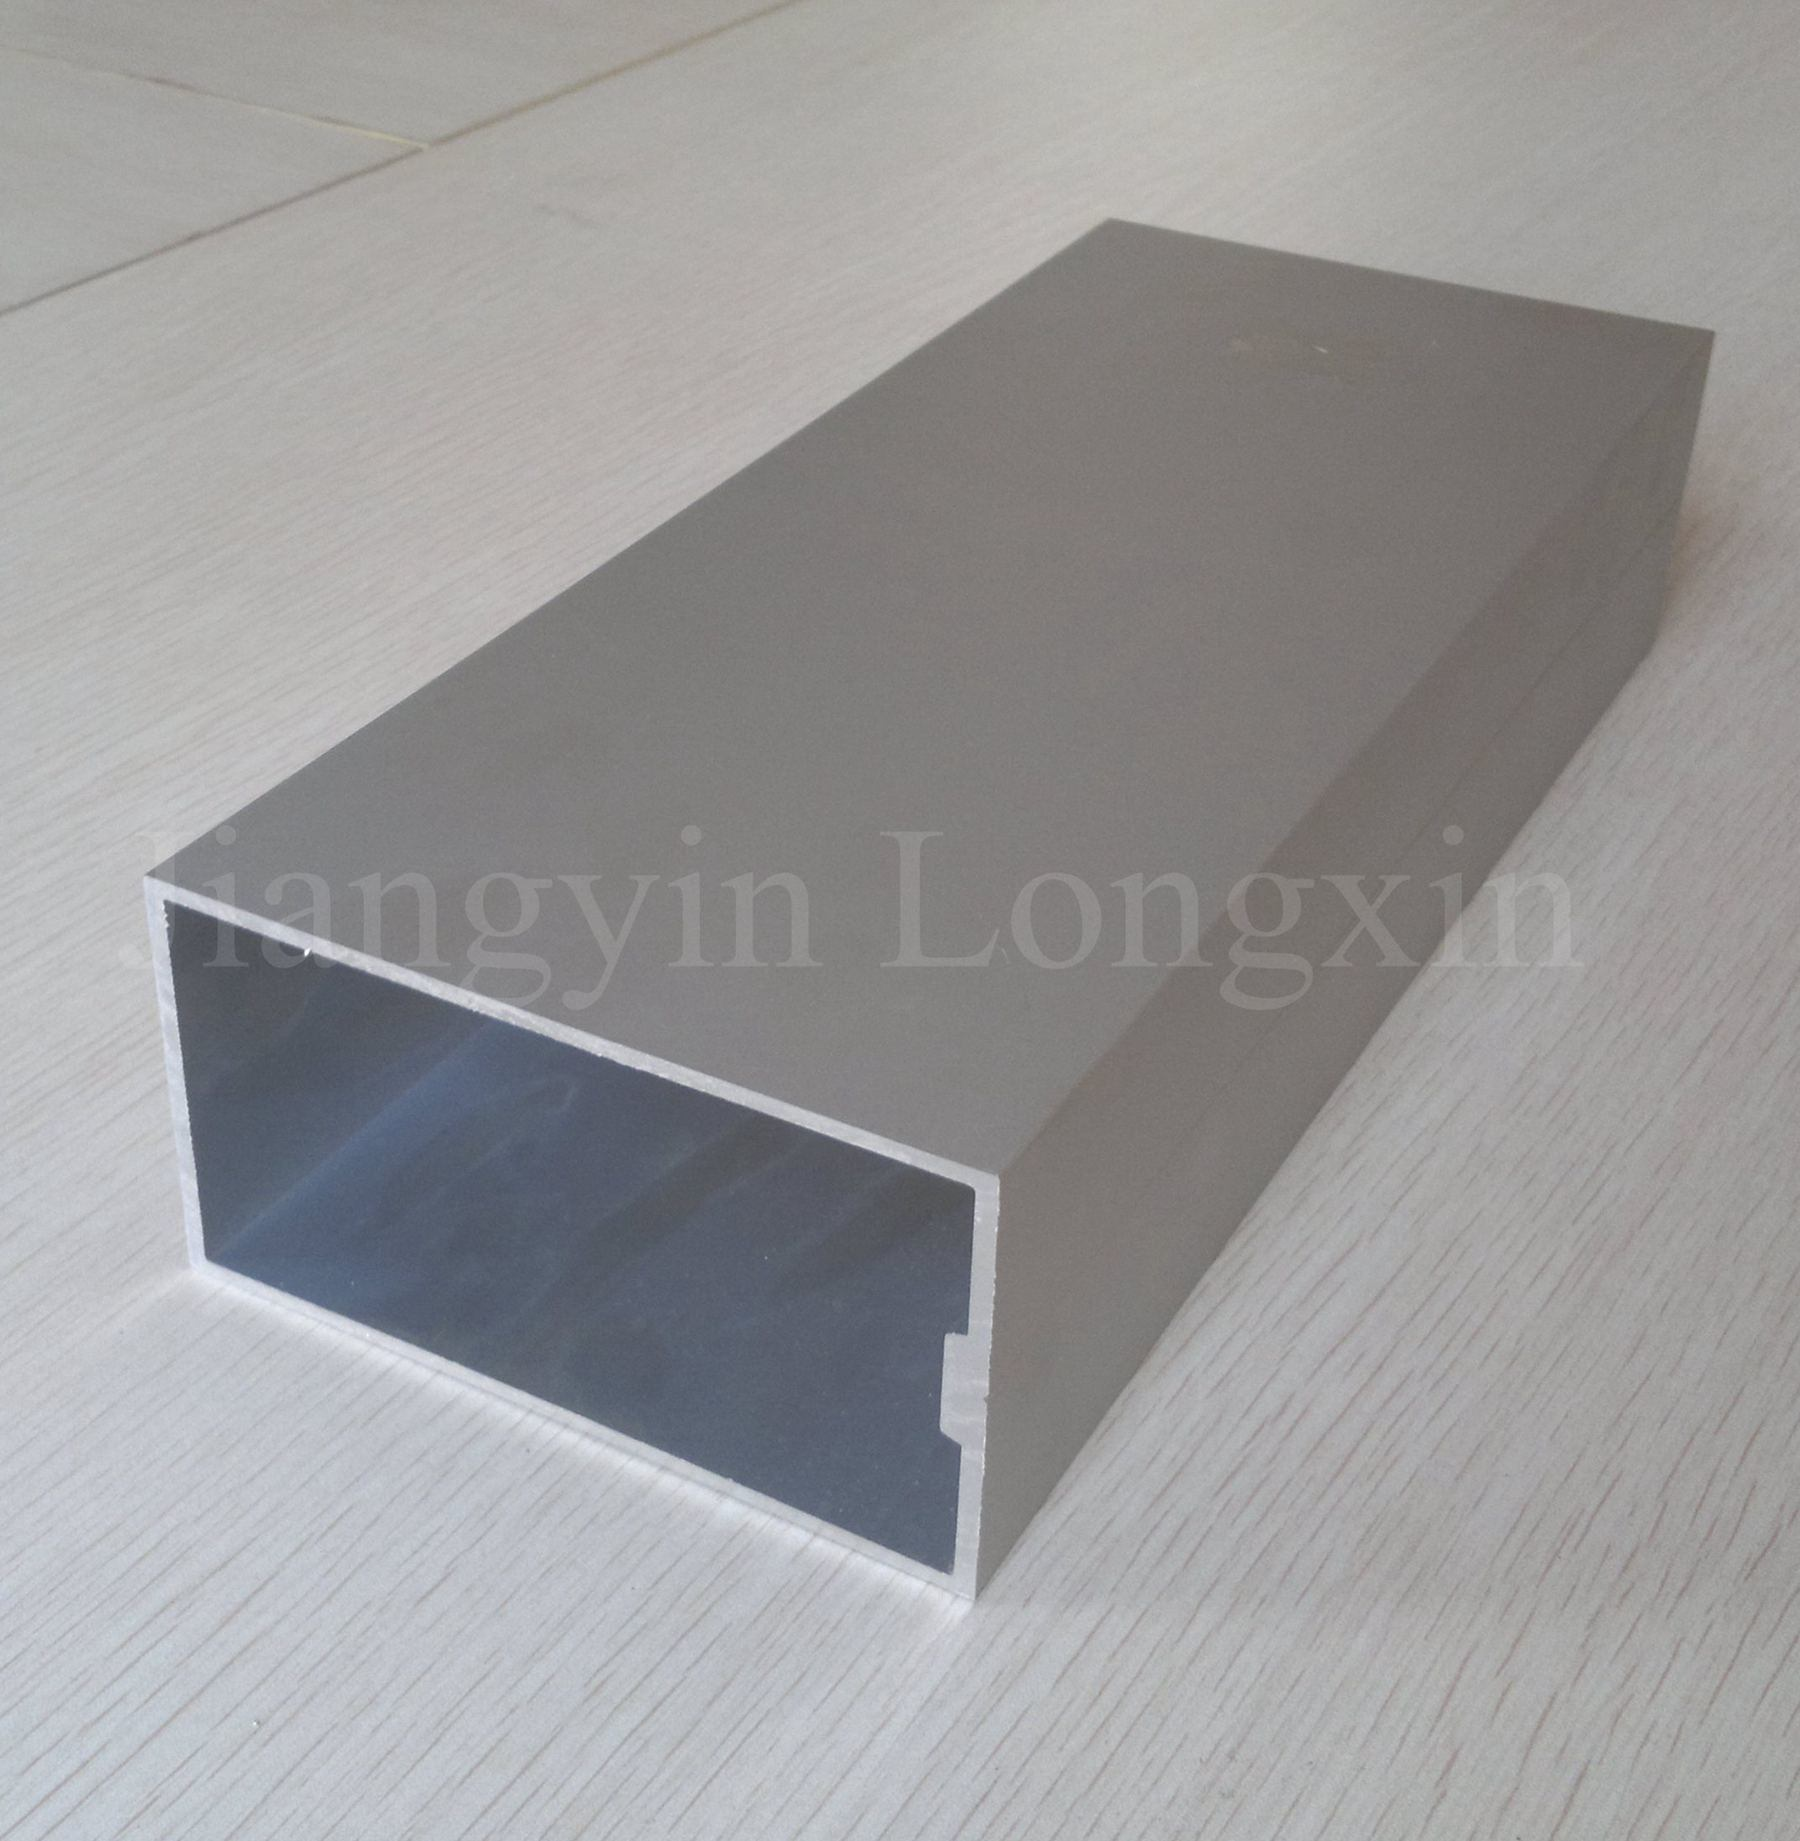 Anodized Aluminum Curtain Wall : China silver anodized aluminum profile of curtain wall